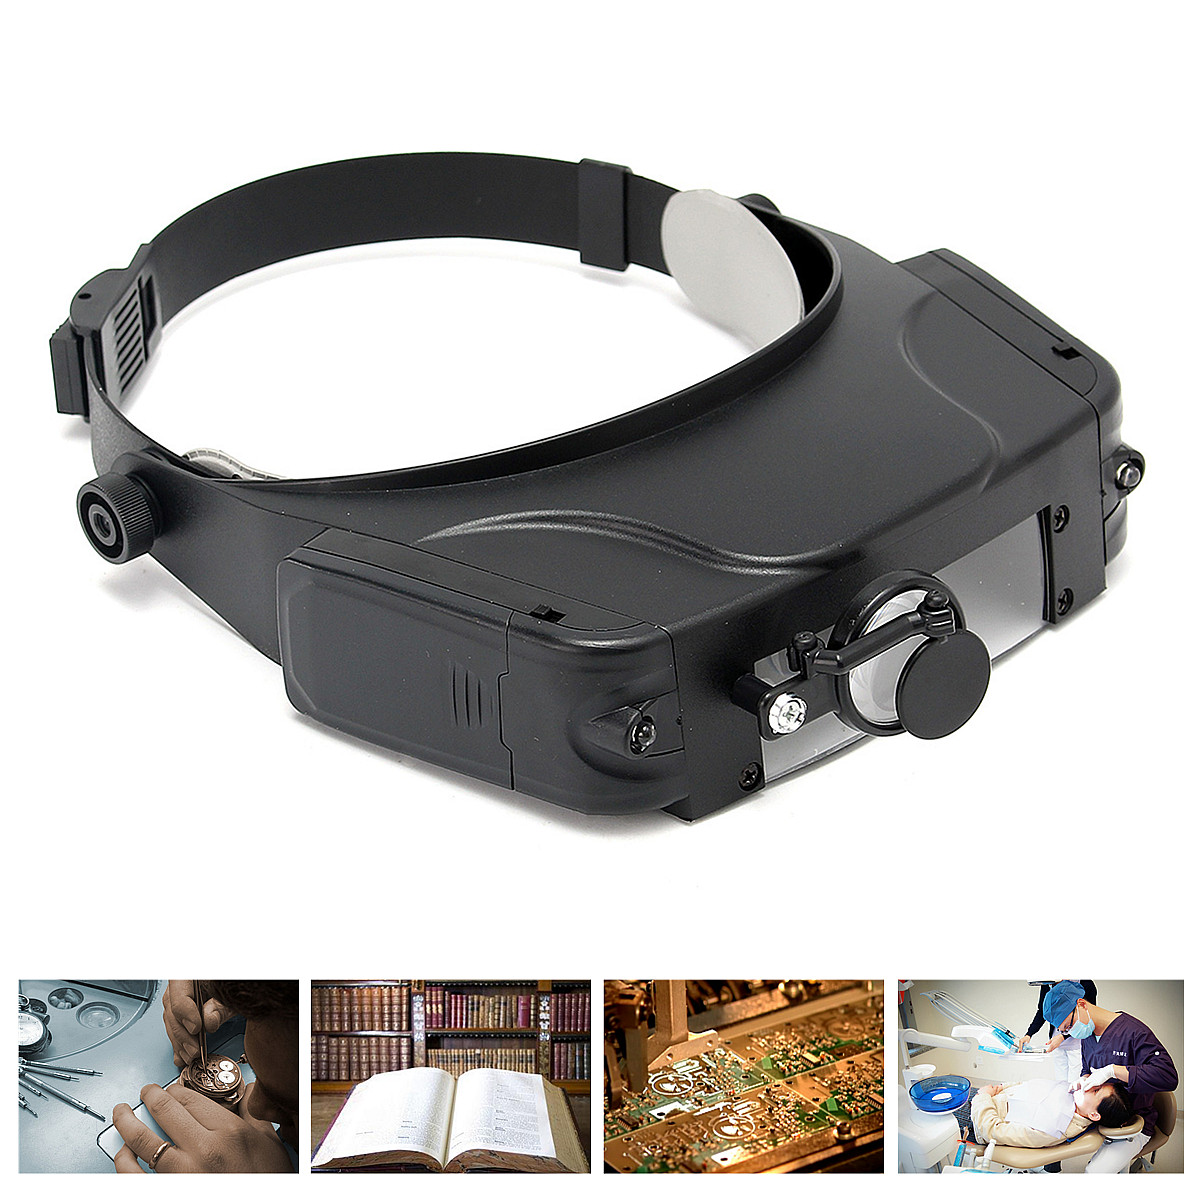 ZEAST Head Band Loupe Magnifying Head-wearing Repairing Magnifier Optical Glasses With LED Light For Repairing Jeweler, Reading